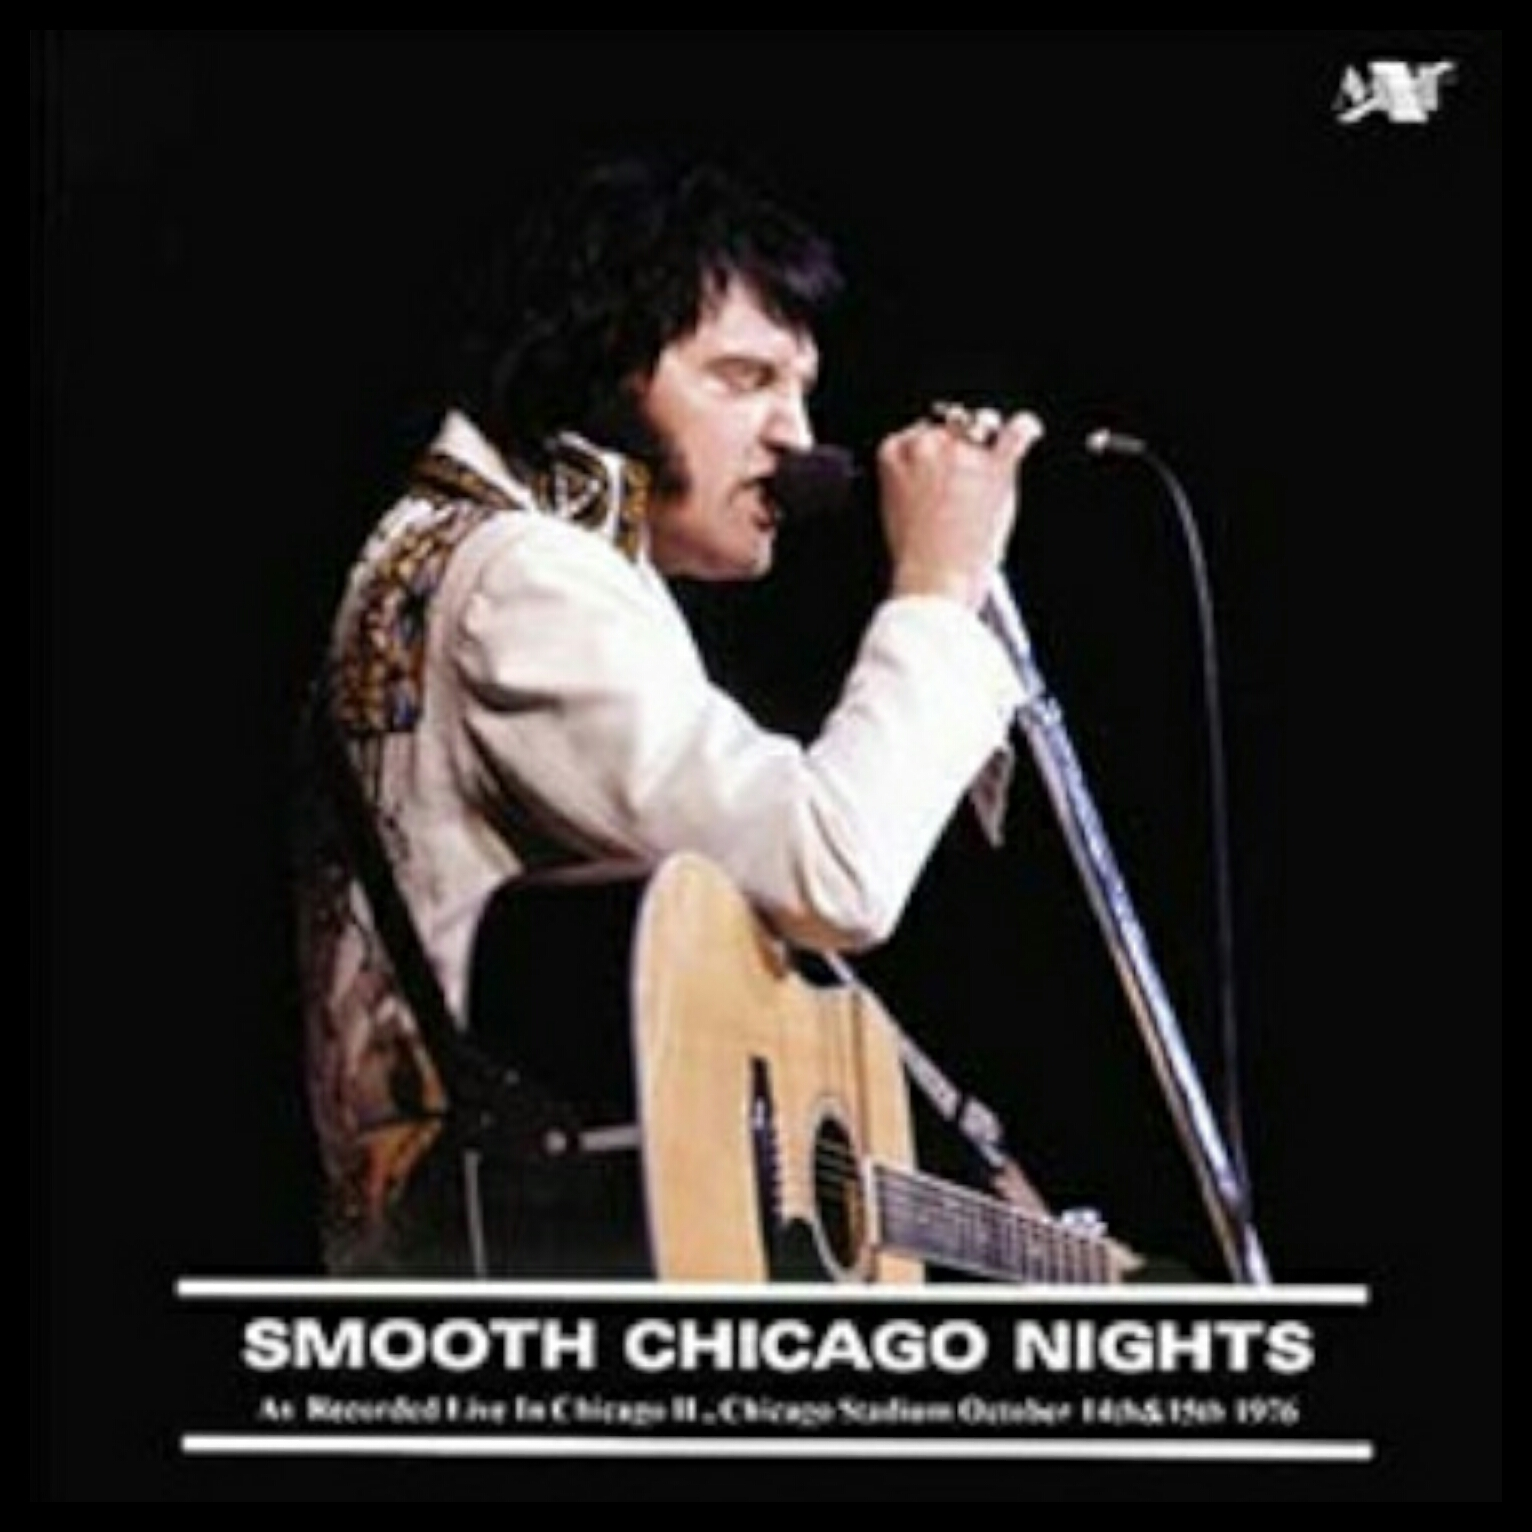 ELVIS - SMOOTH CHICAGO NIGHTS Img_2020-09-26_22-12-opk6a